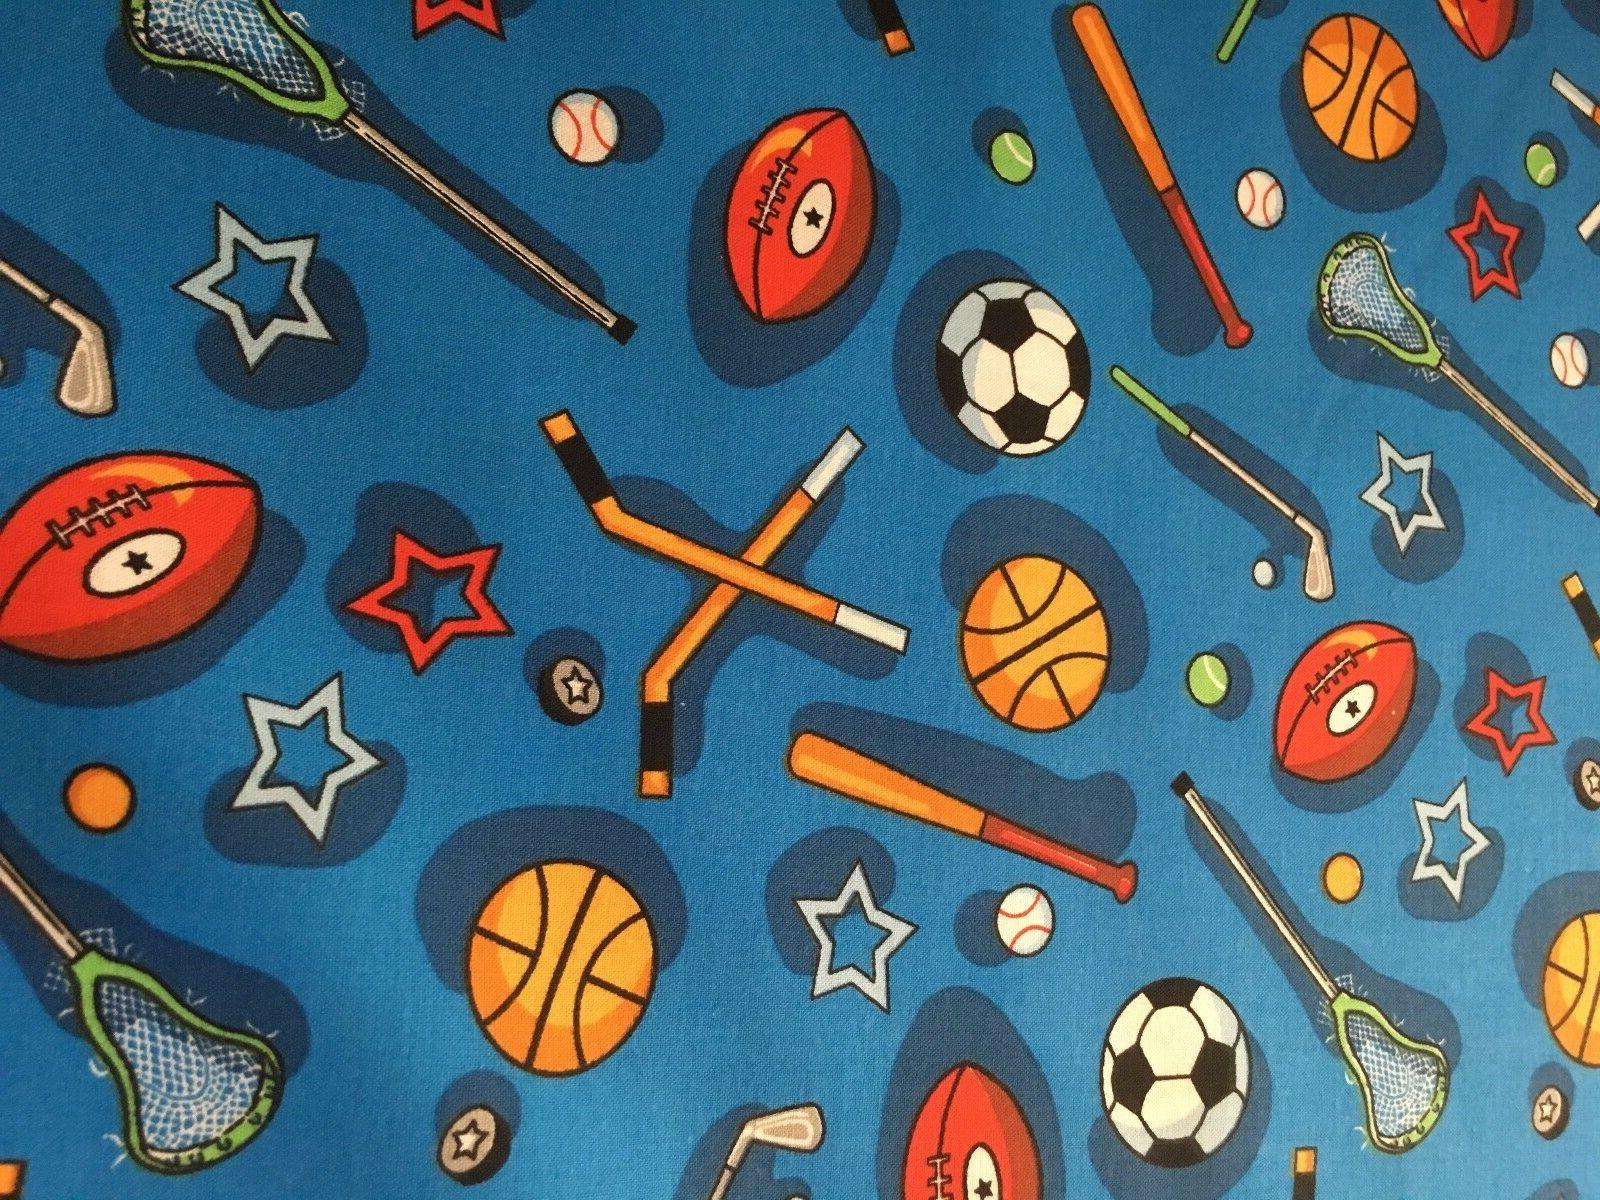 kids choice sports equipment on blue by